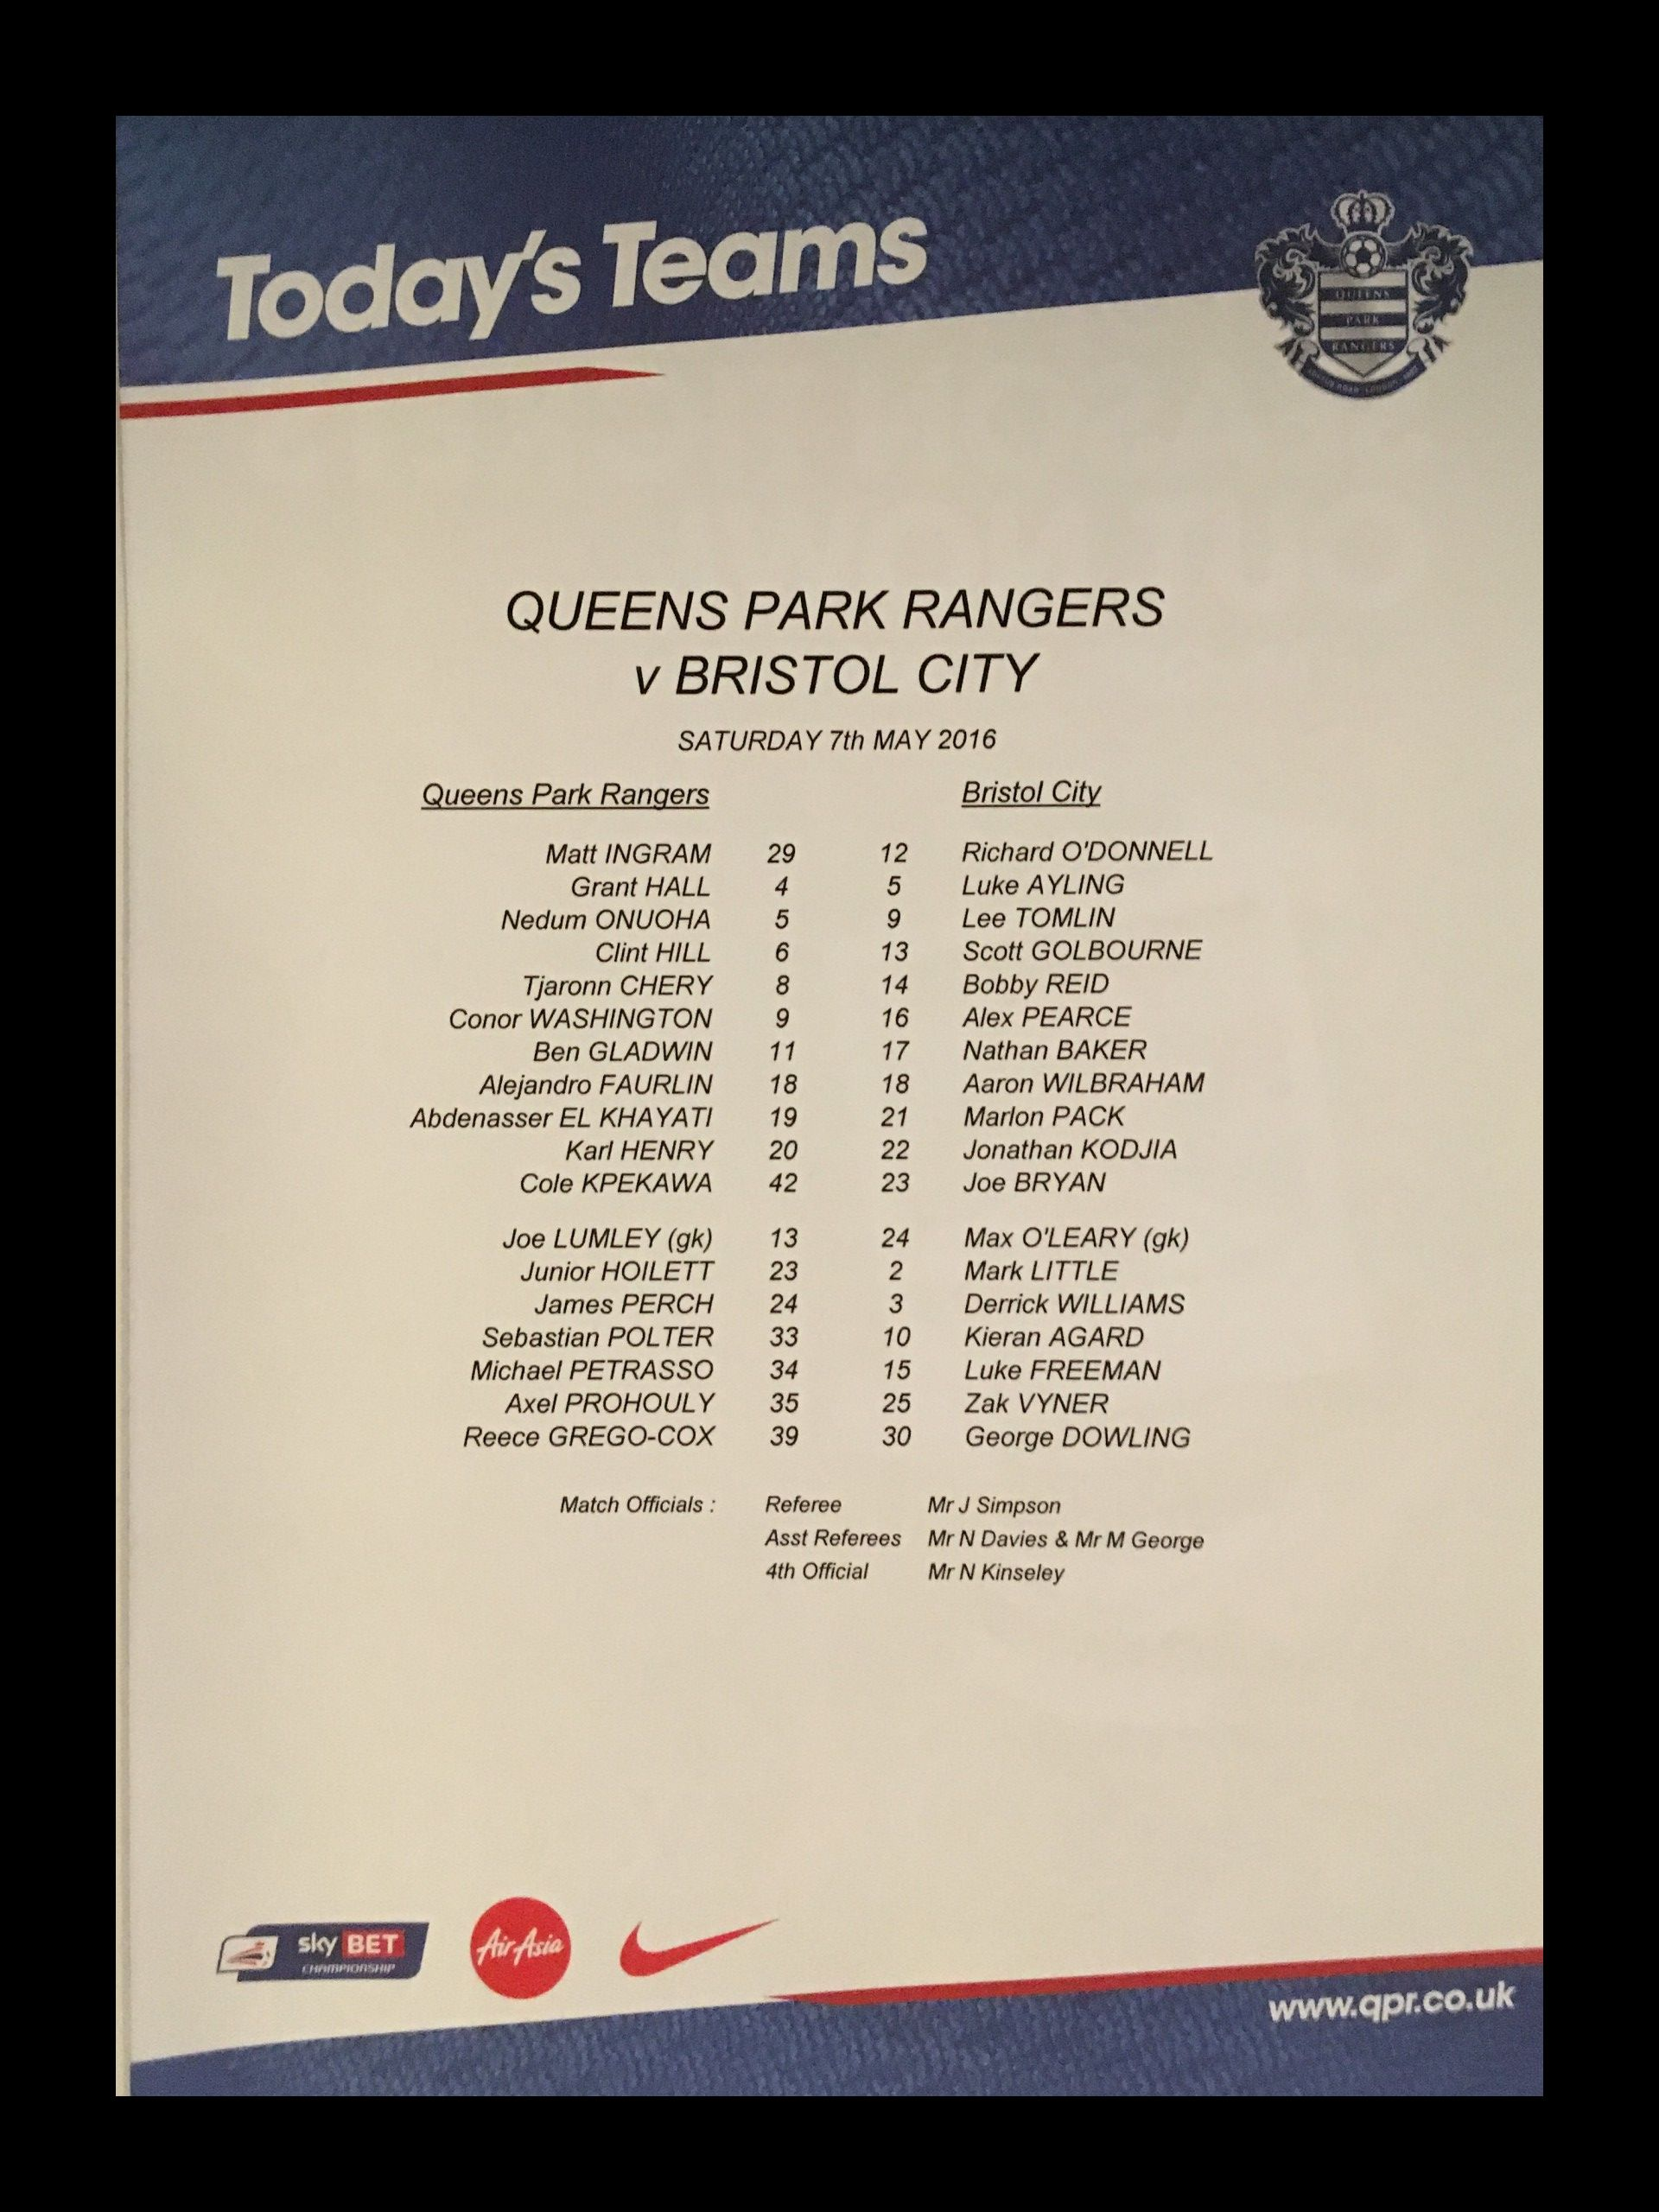 Queens Park Rangers v Bristol City 07-05-2016 Team Sheet